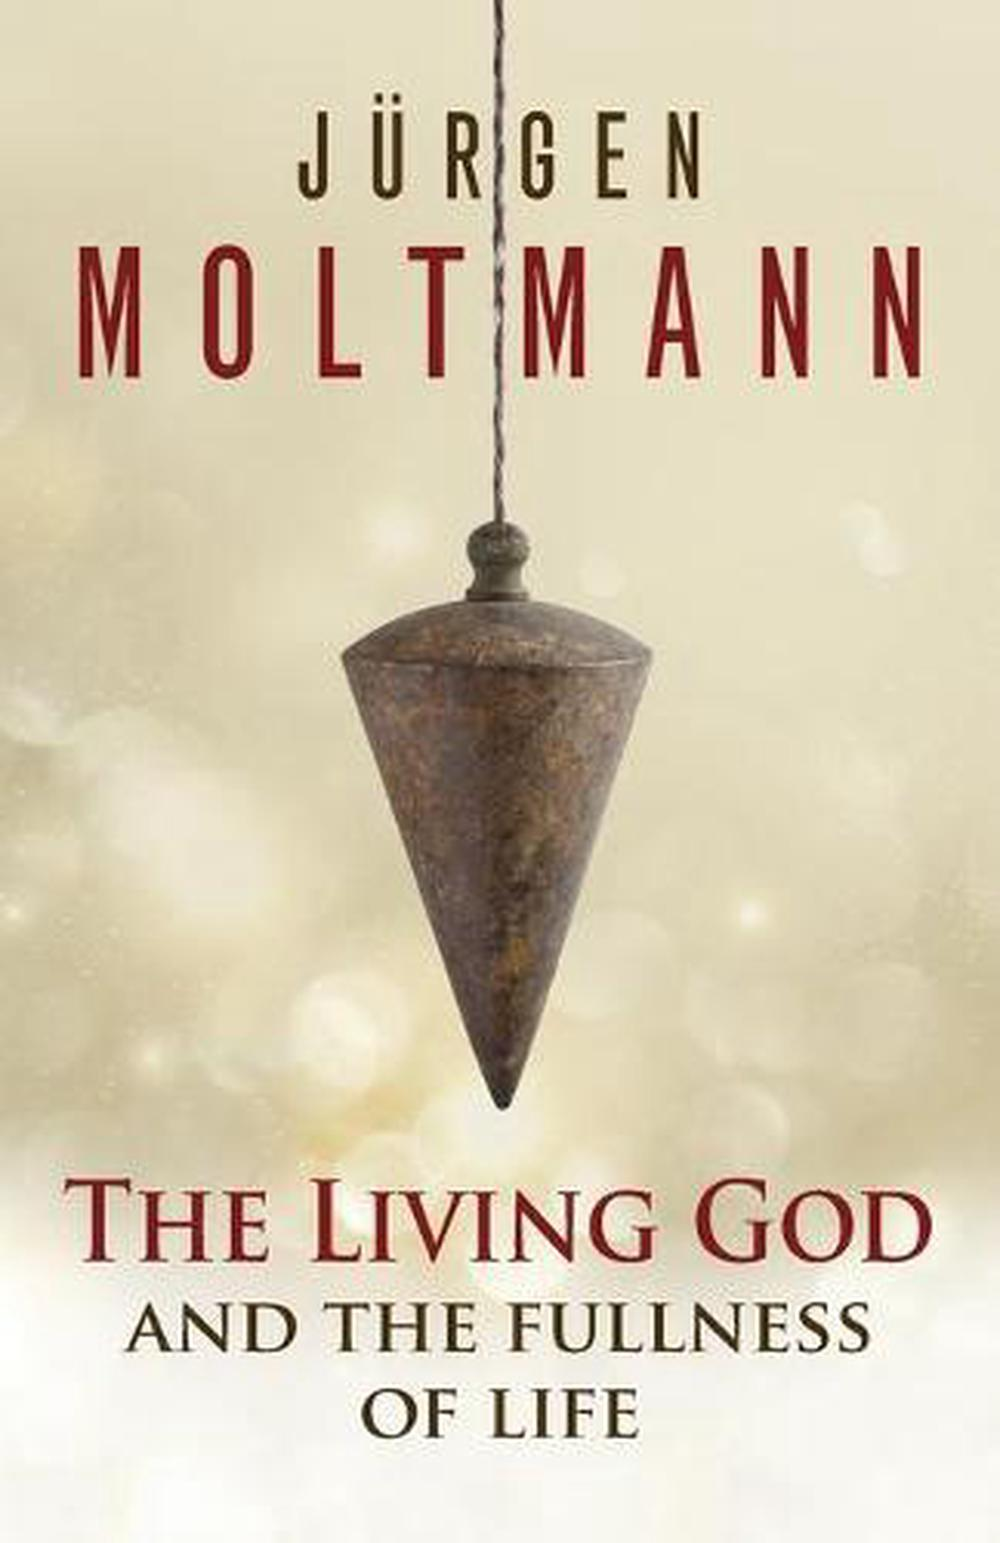 The Living God and the Fullness of Life by Jurgen Moltmann, ISBN: 9780664261610